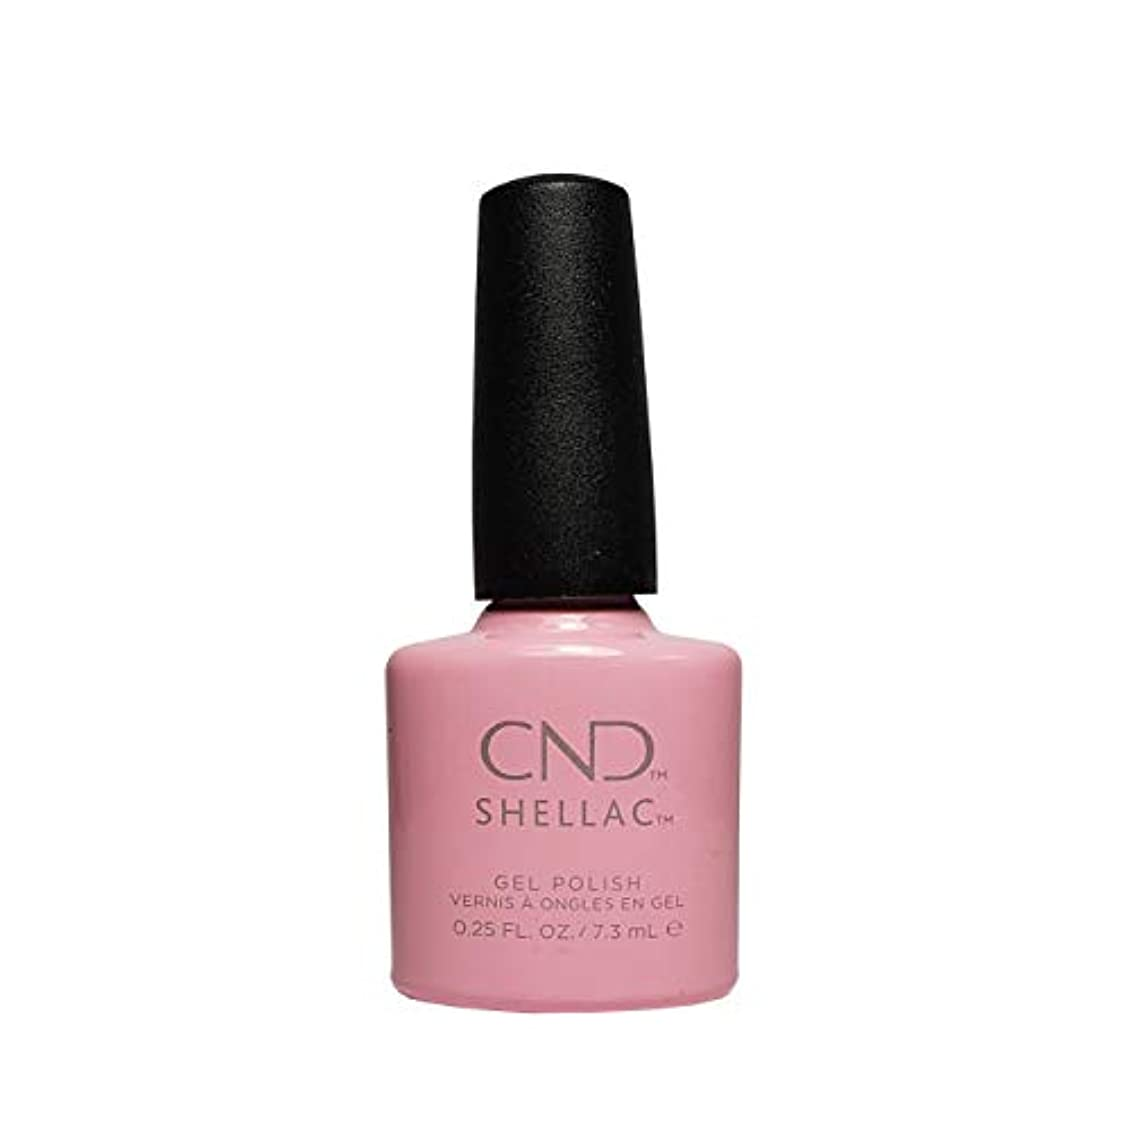 CND Shellac Power Polish - Intimates Collection - Blush Teddy